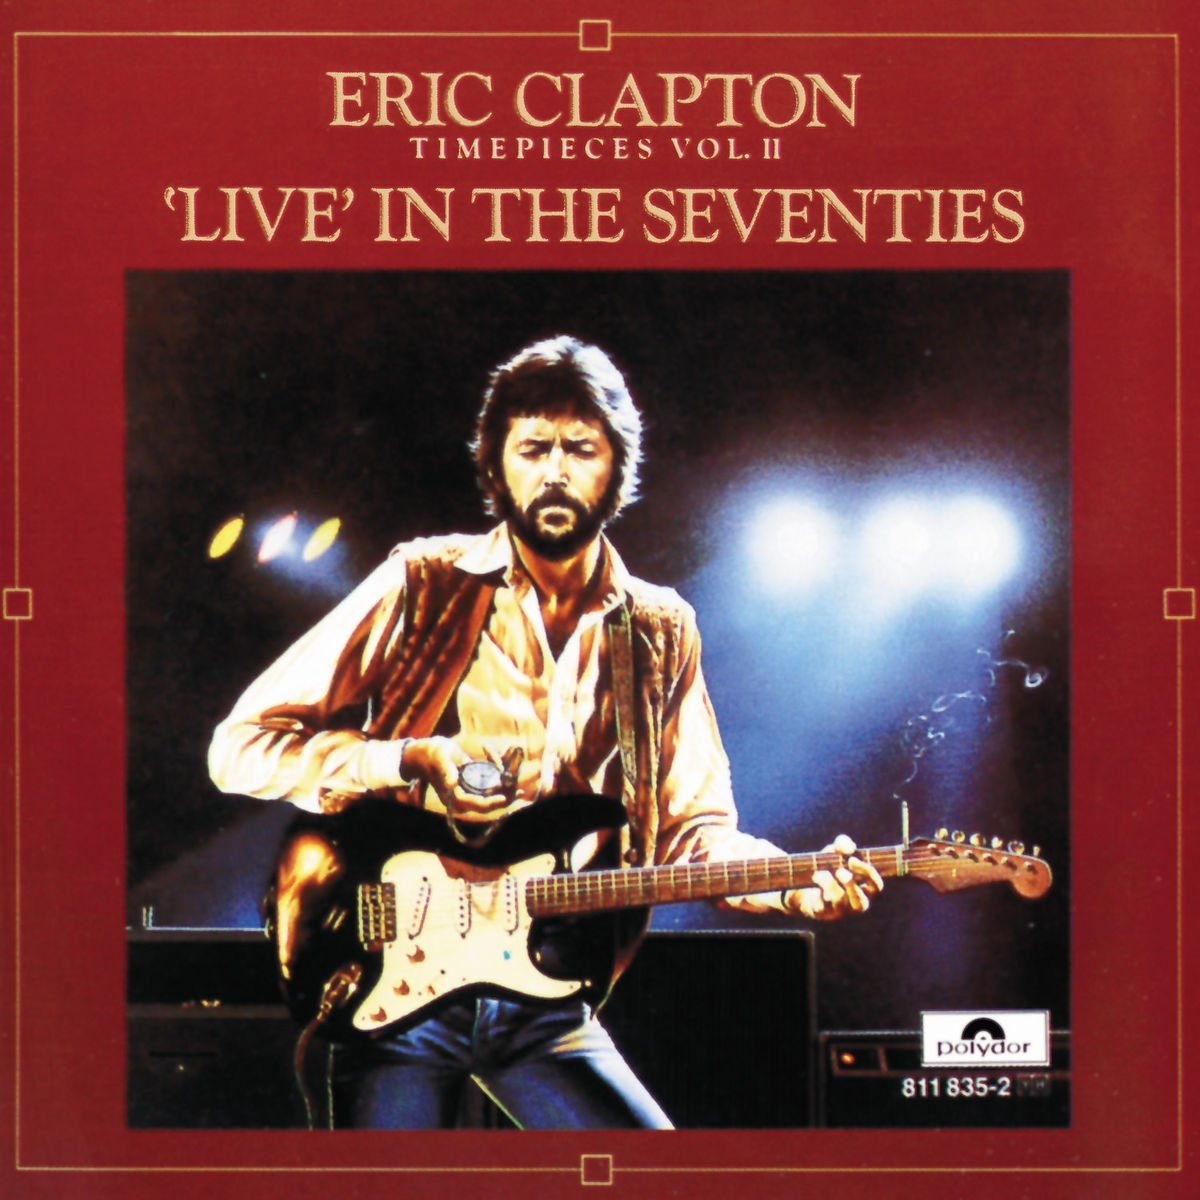 Timepieces, Vol. II: Live in the Seventies